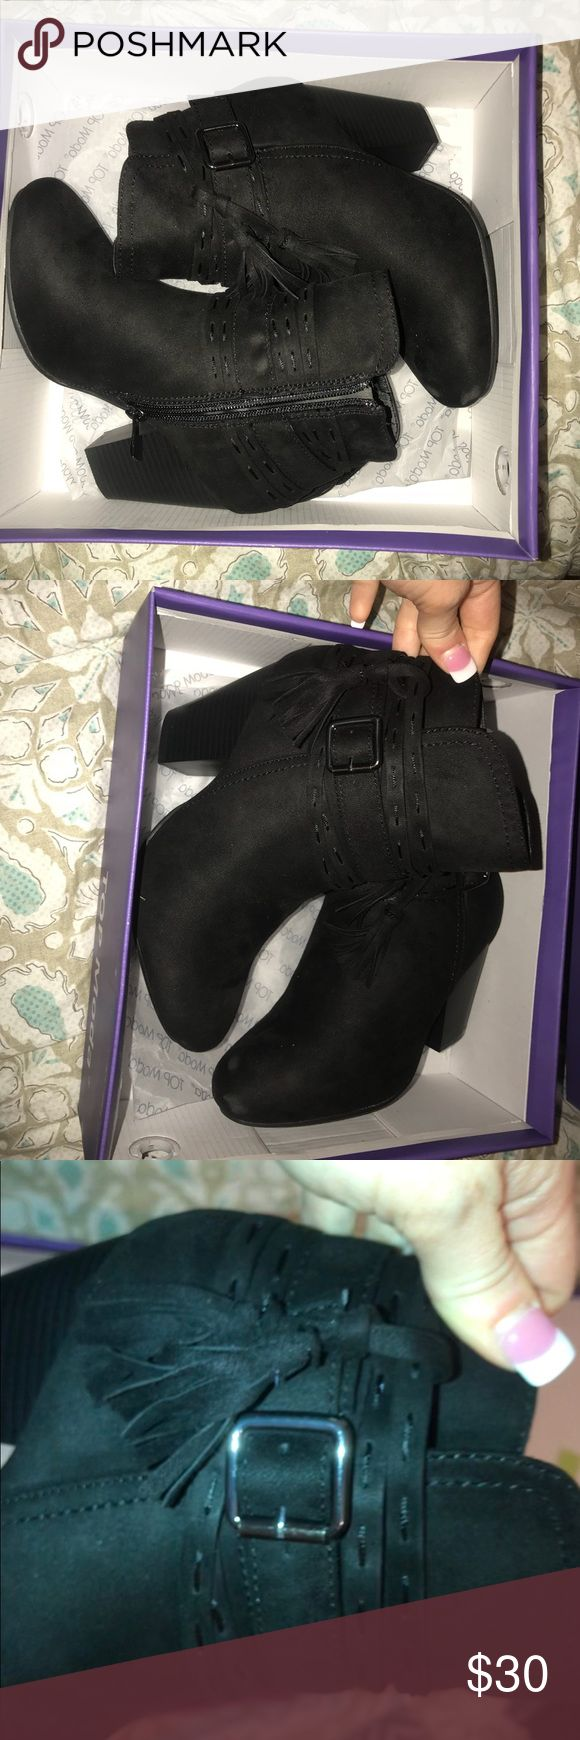 Fall black booties! WORN ONCE I only wore this once but I have sooo many pairs of booties so I decided to get rid of these my loss your gain! They're sooo cute! Size 6 I put Charlotte rousse but these are from a boutique ! Charlotte Russe Shoes Ankle Boots & Booties